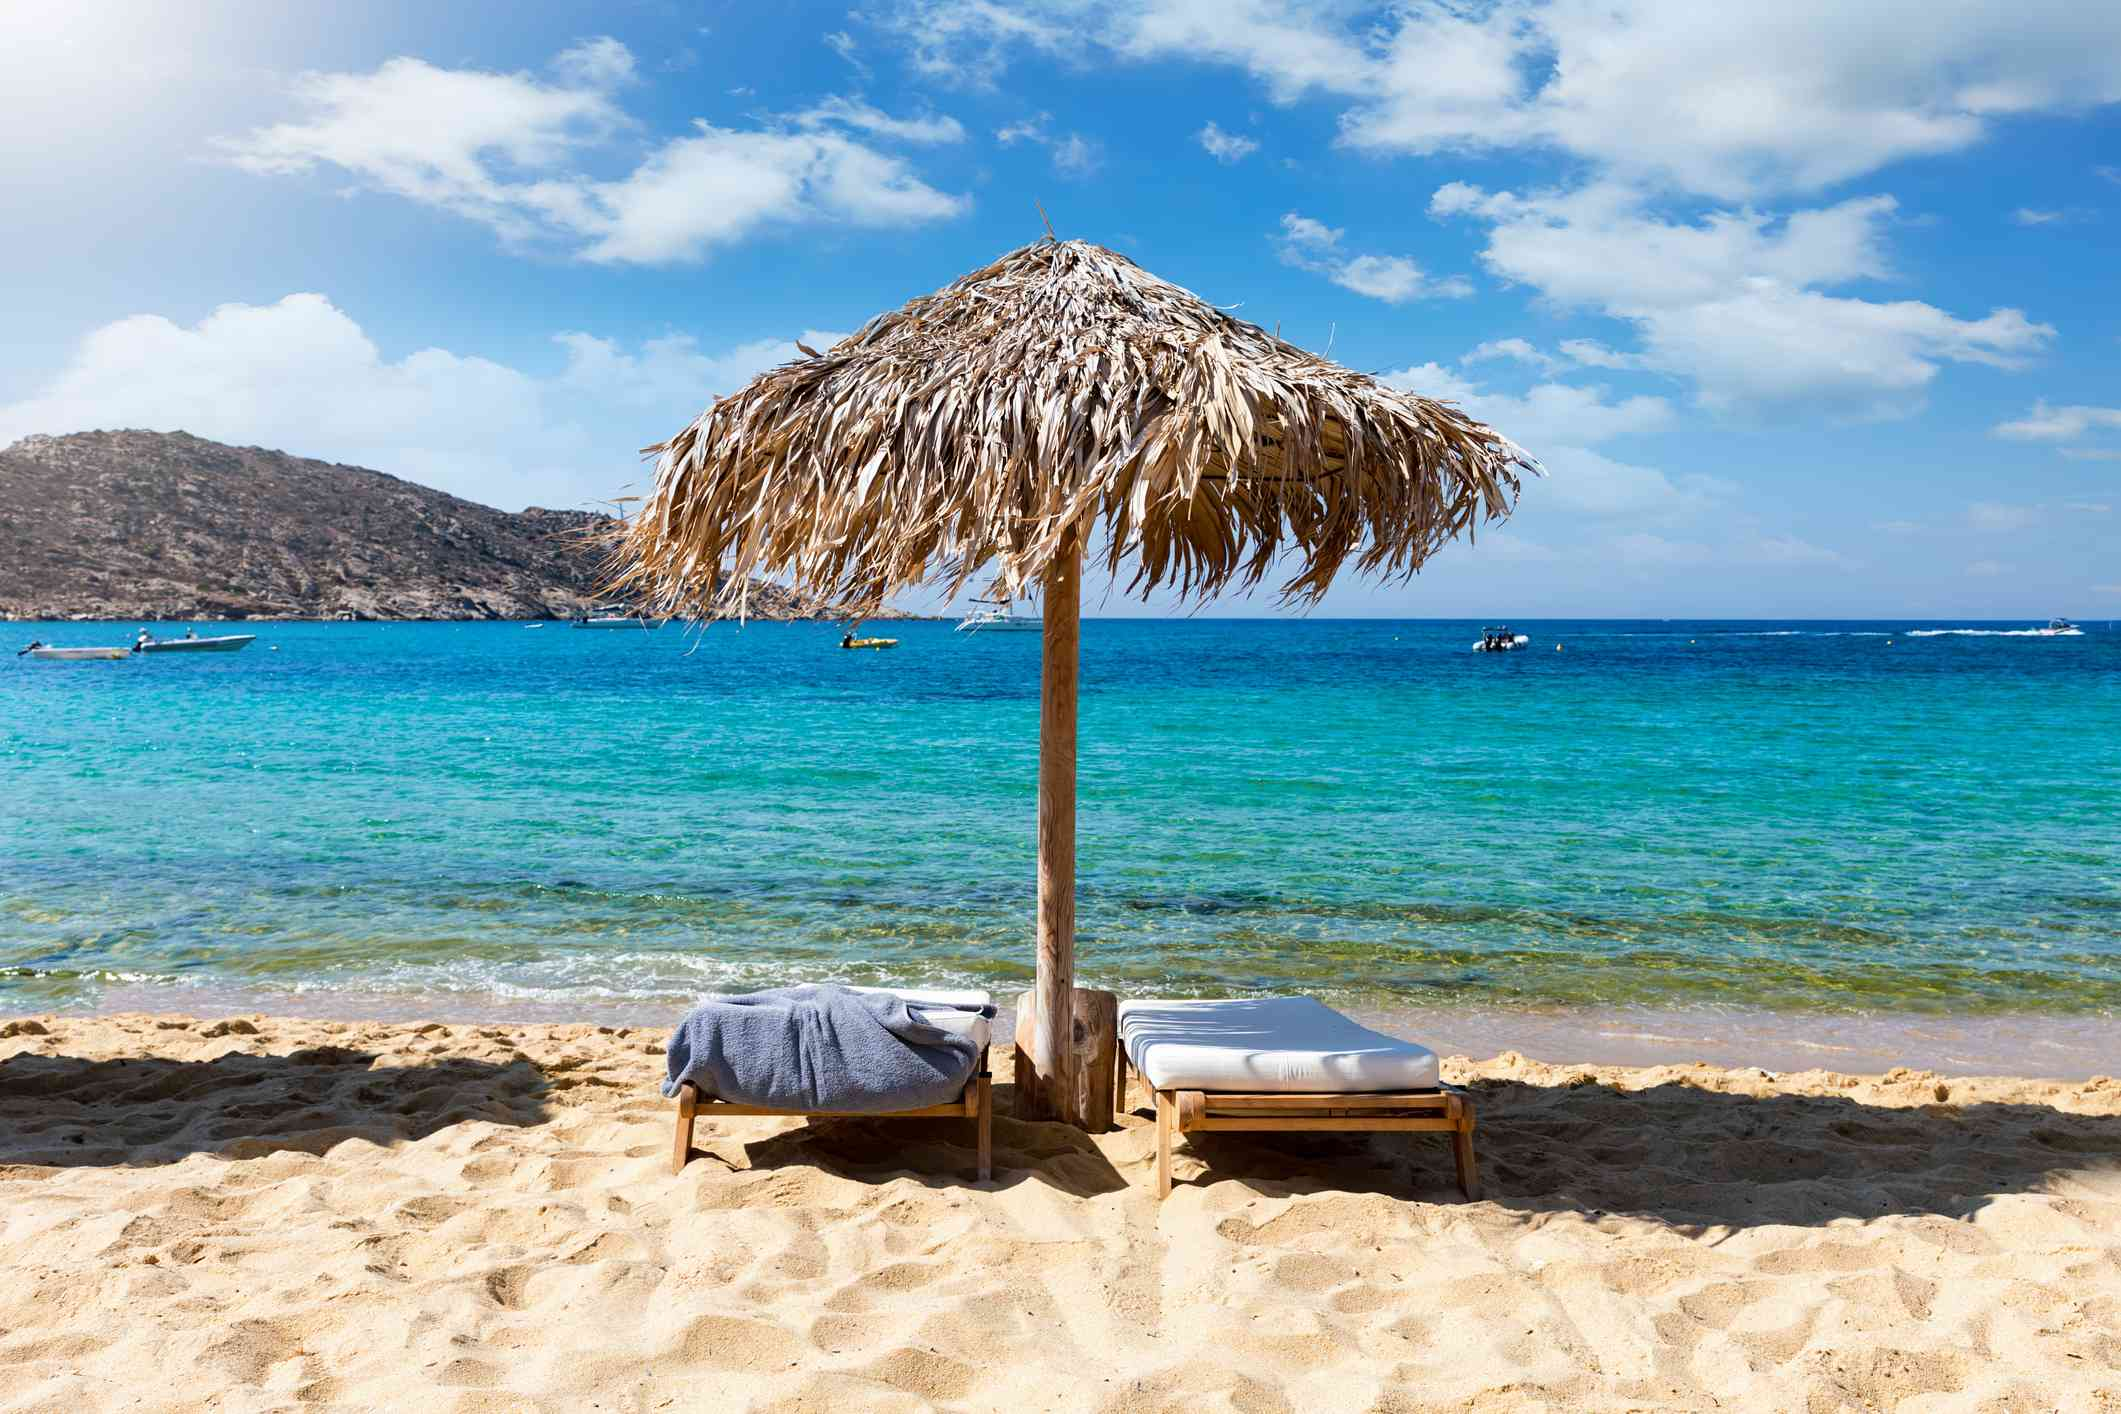 The famous Mylopotas beach on the island of Ios, Cyclades, Greece